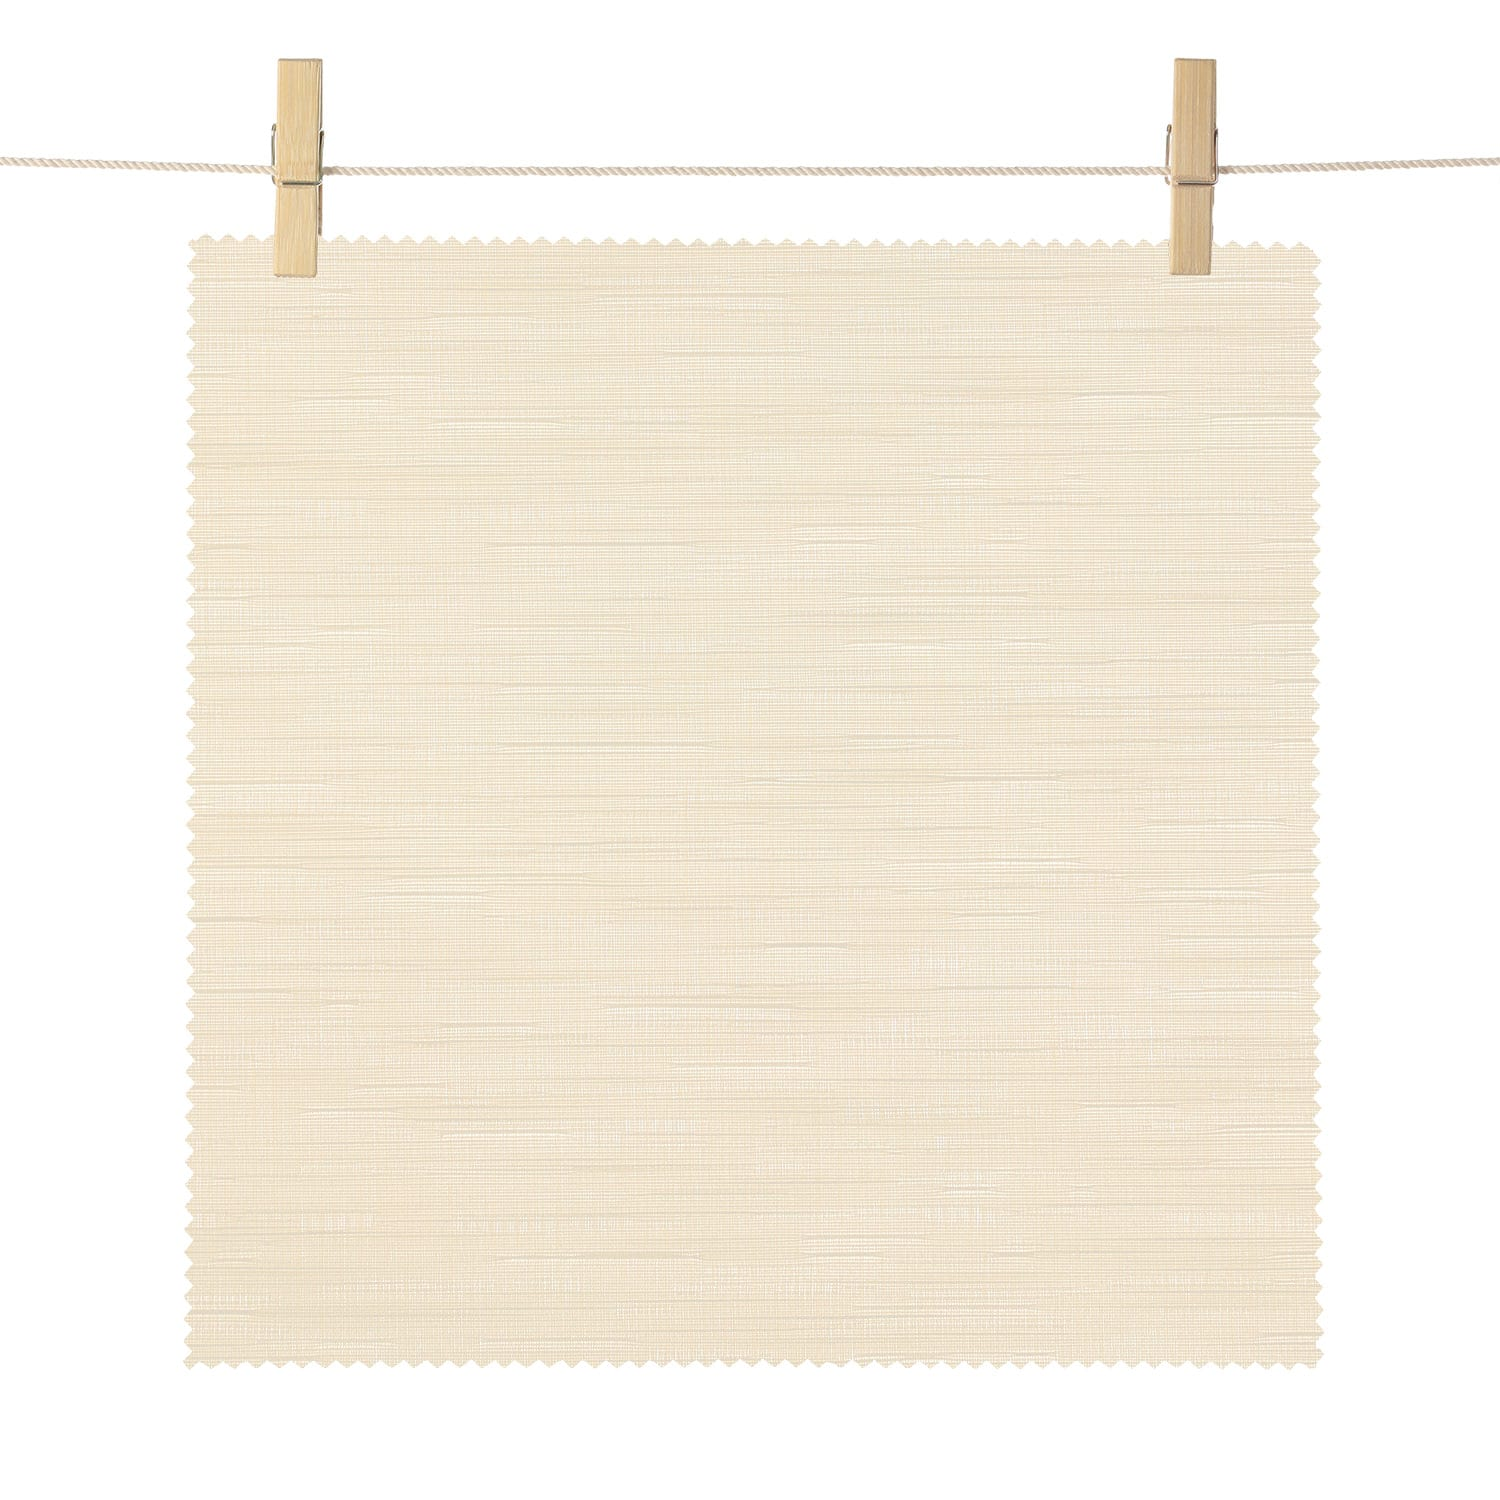 Saratoga Beige Bedford Textured Light Filtering Roller Shade Swatch